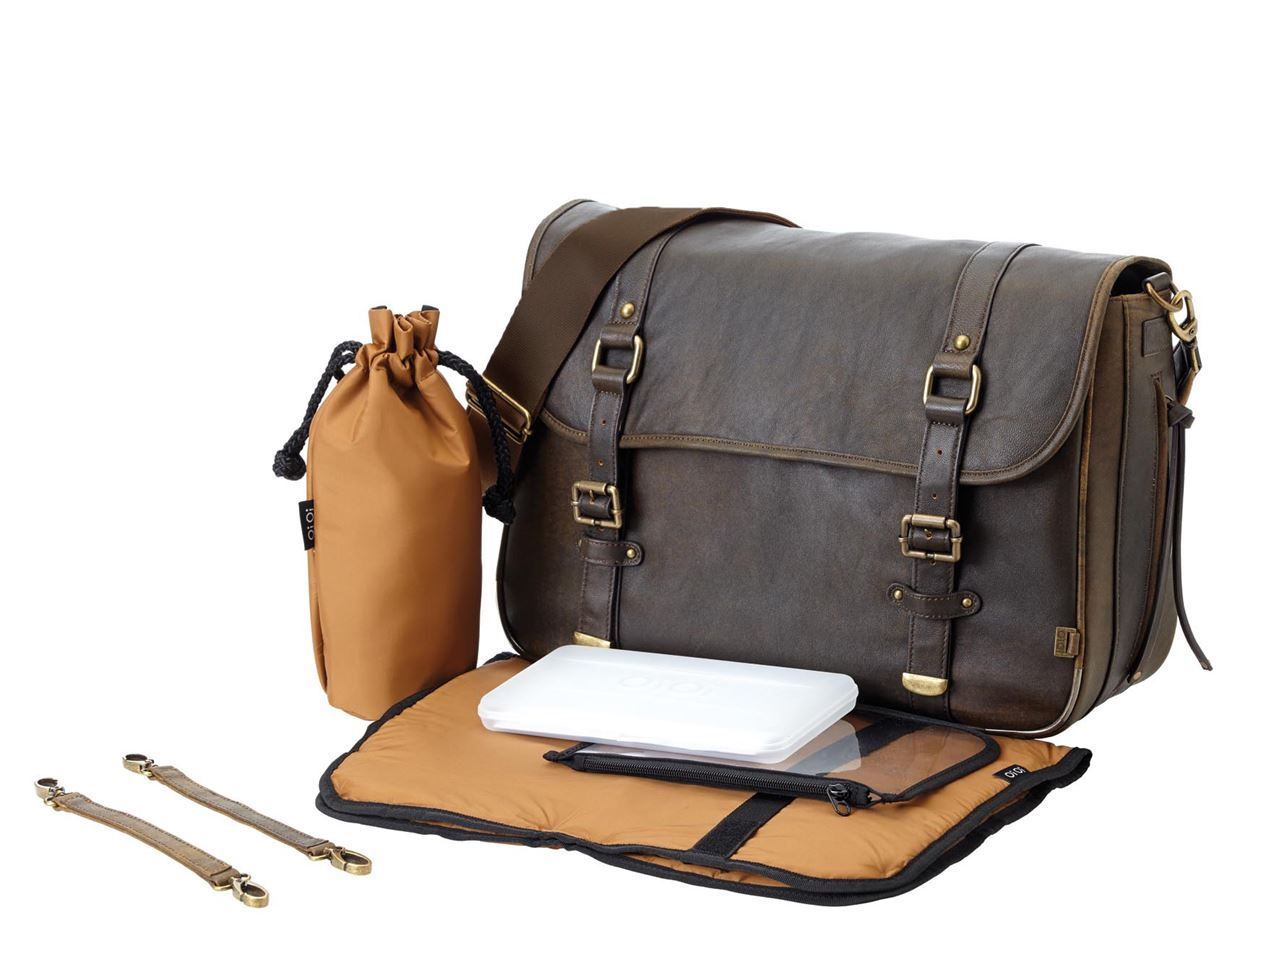 Oioi Baby Bags Men S Chocolate Leather Satchel Diaper Bag Even If You Don T Know What End Is Up With This Sure Will Look Like Do J